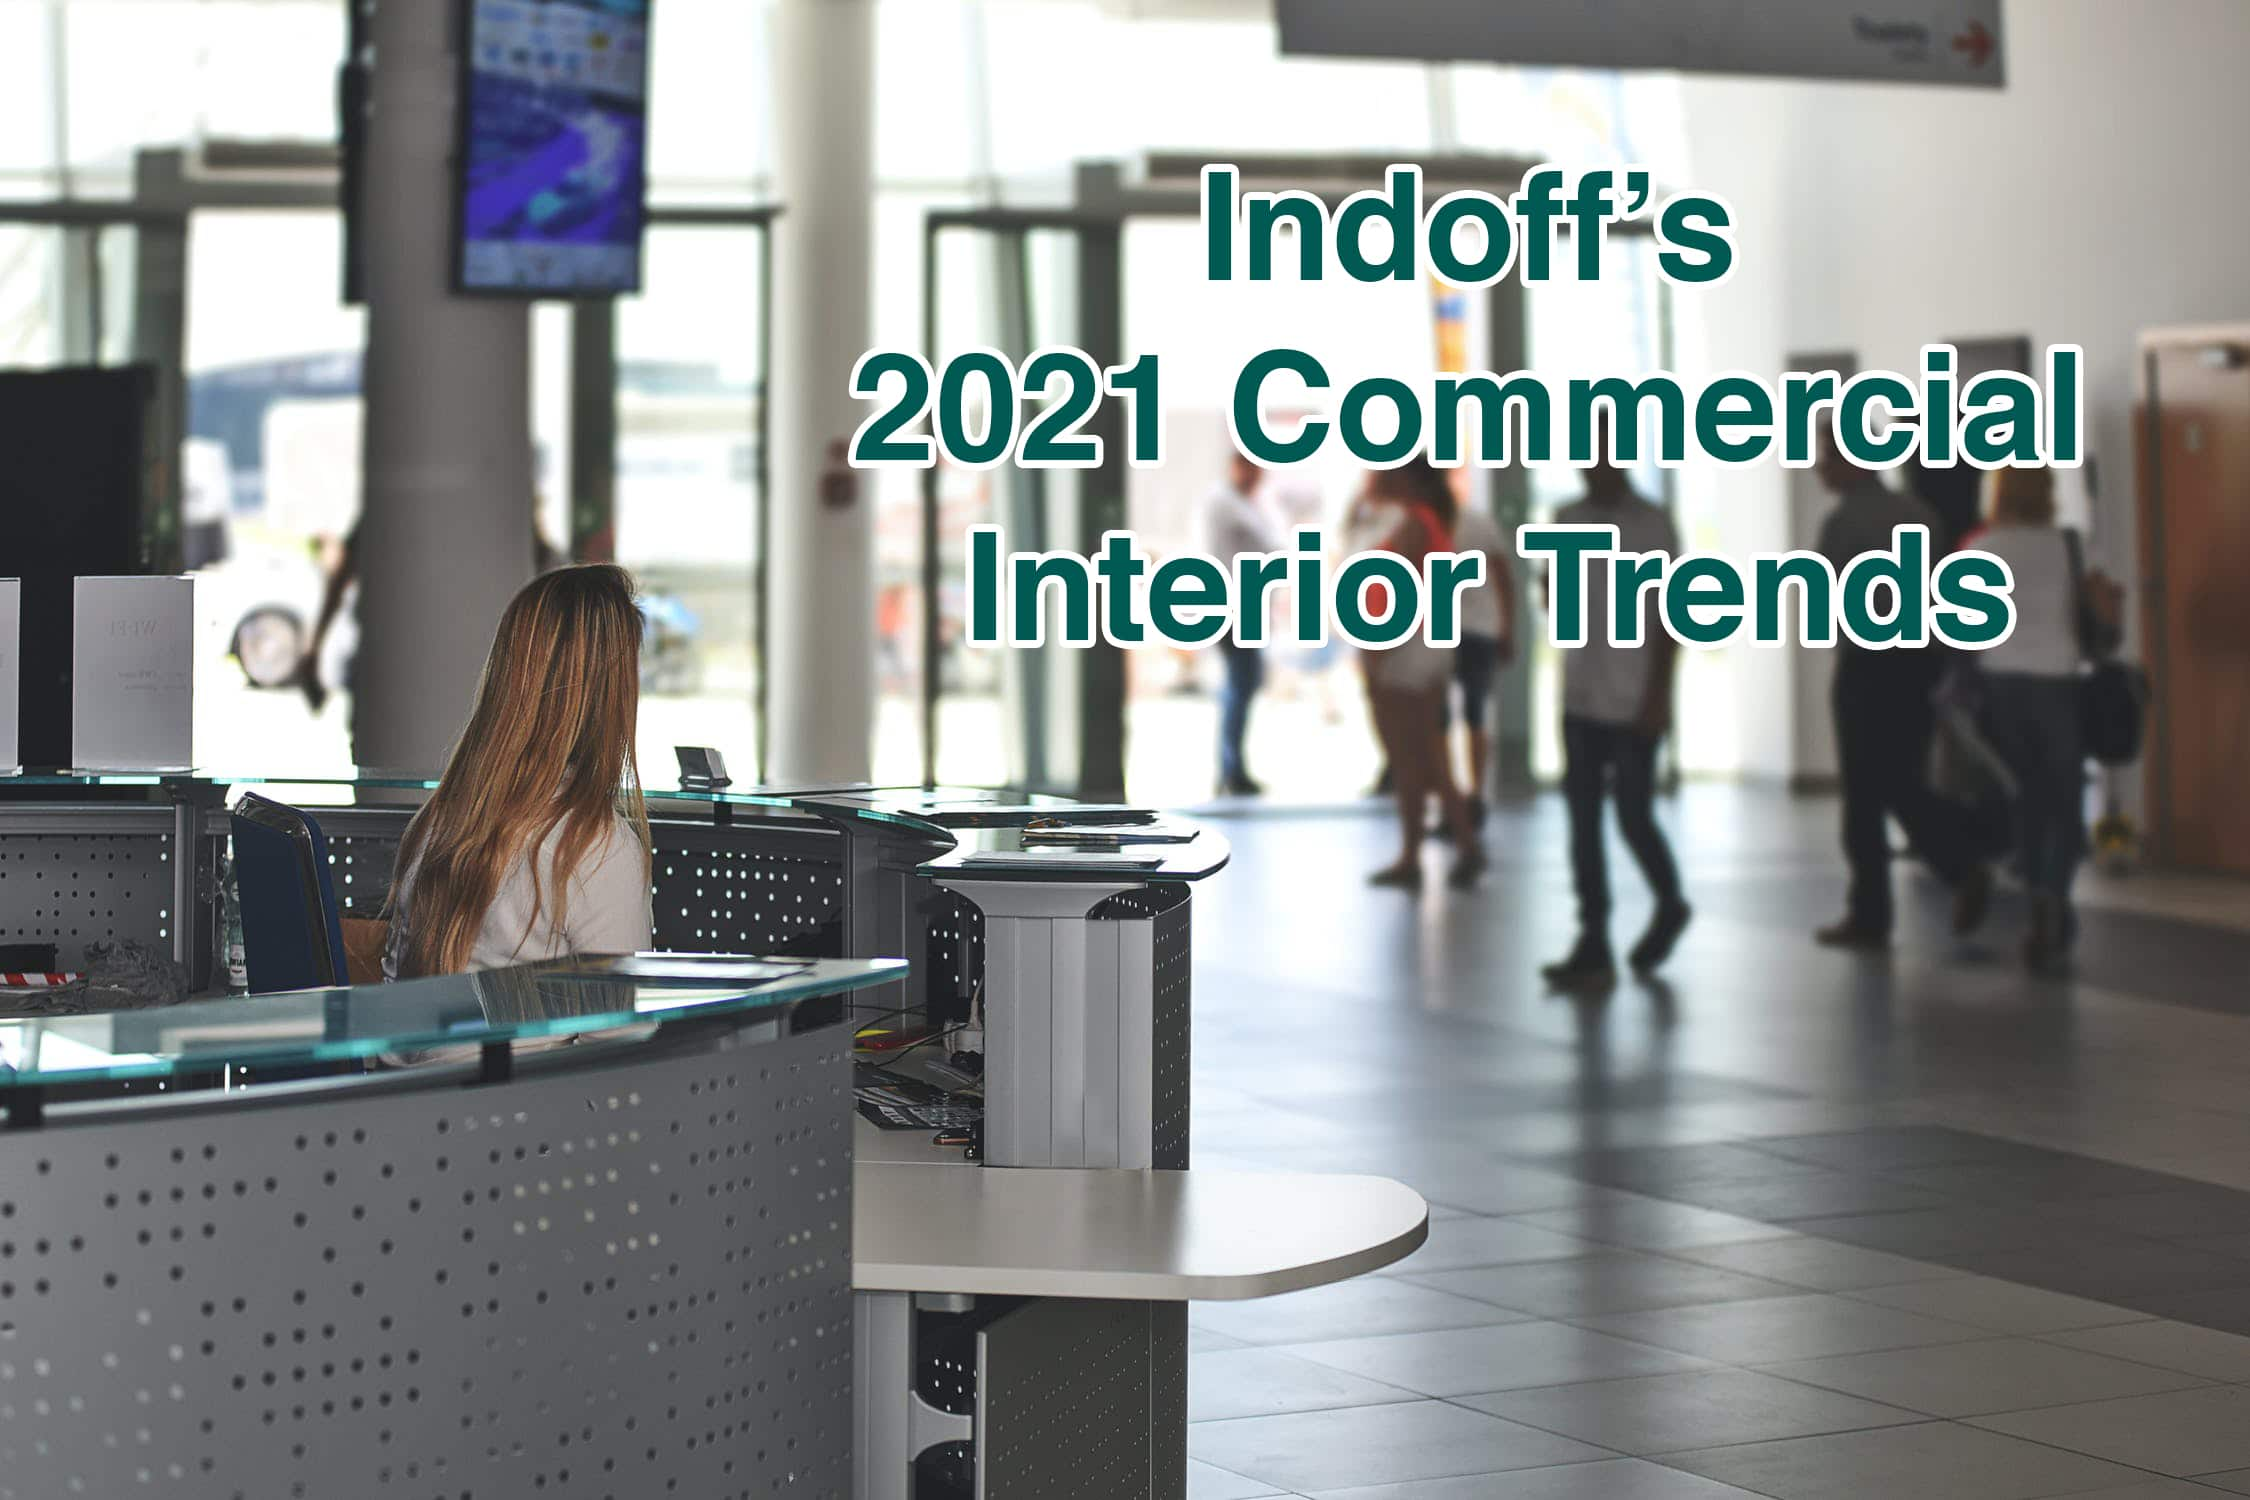 2021 Commercial Interior Trends